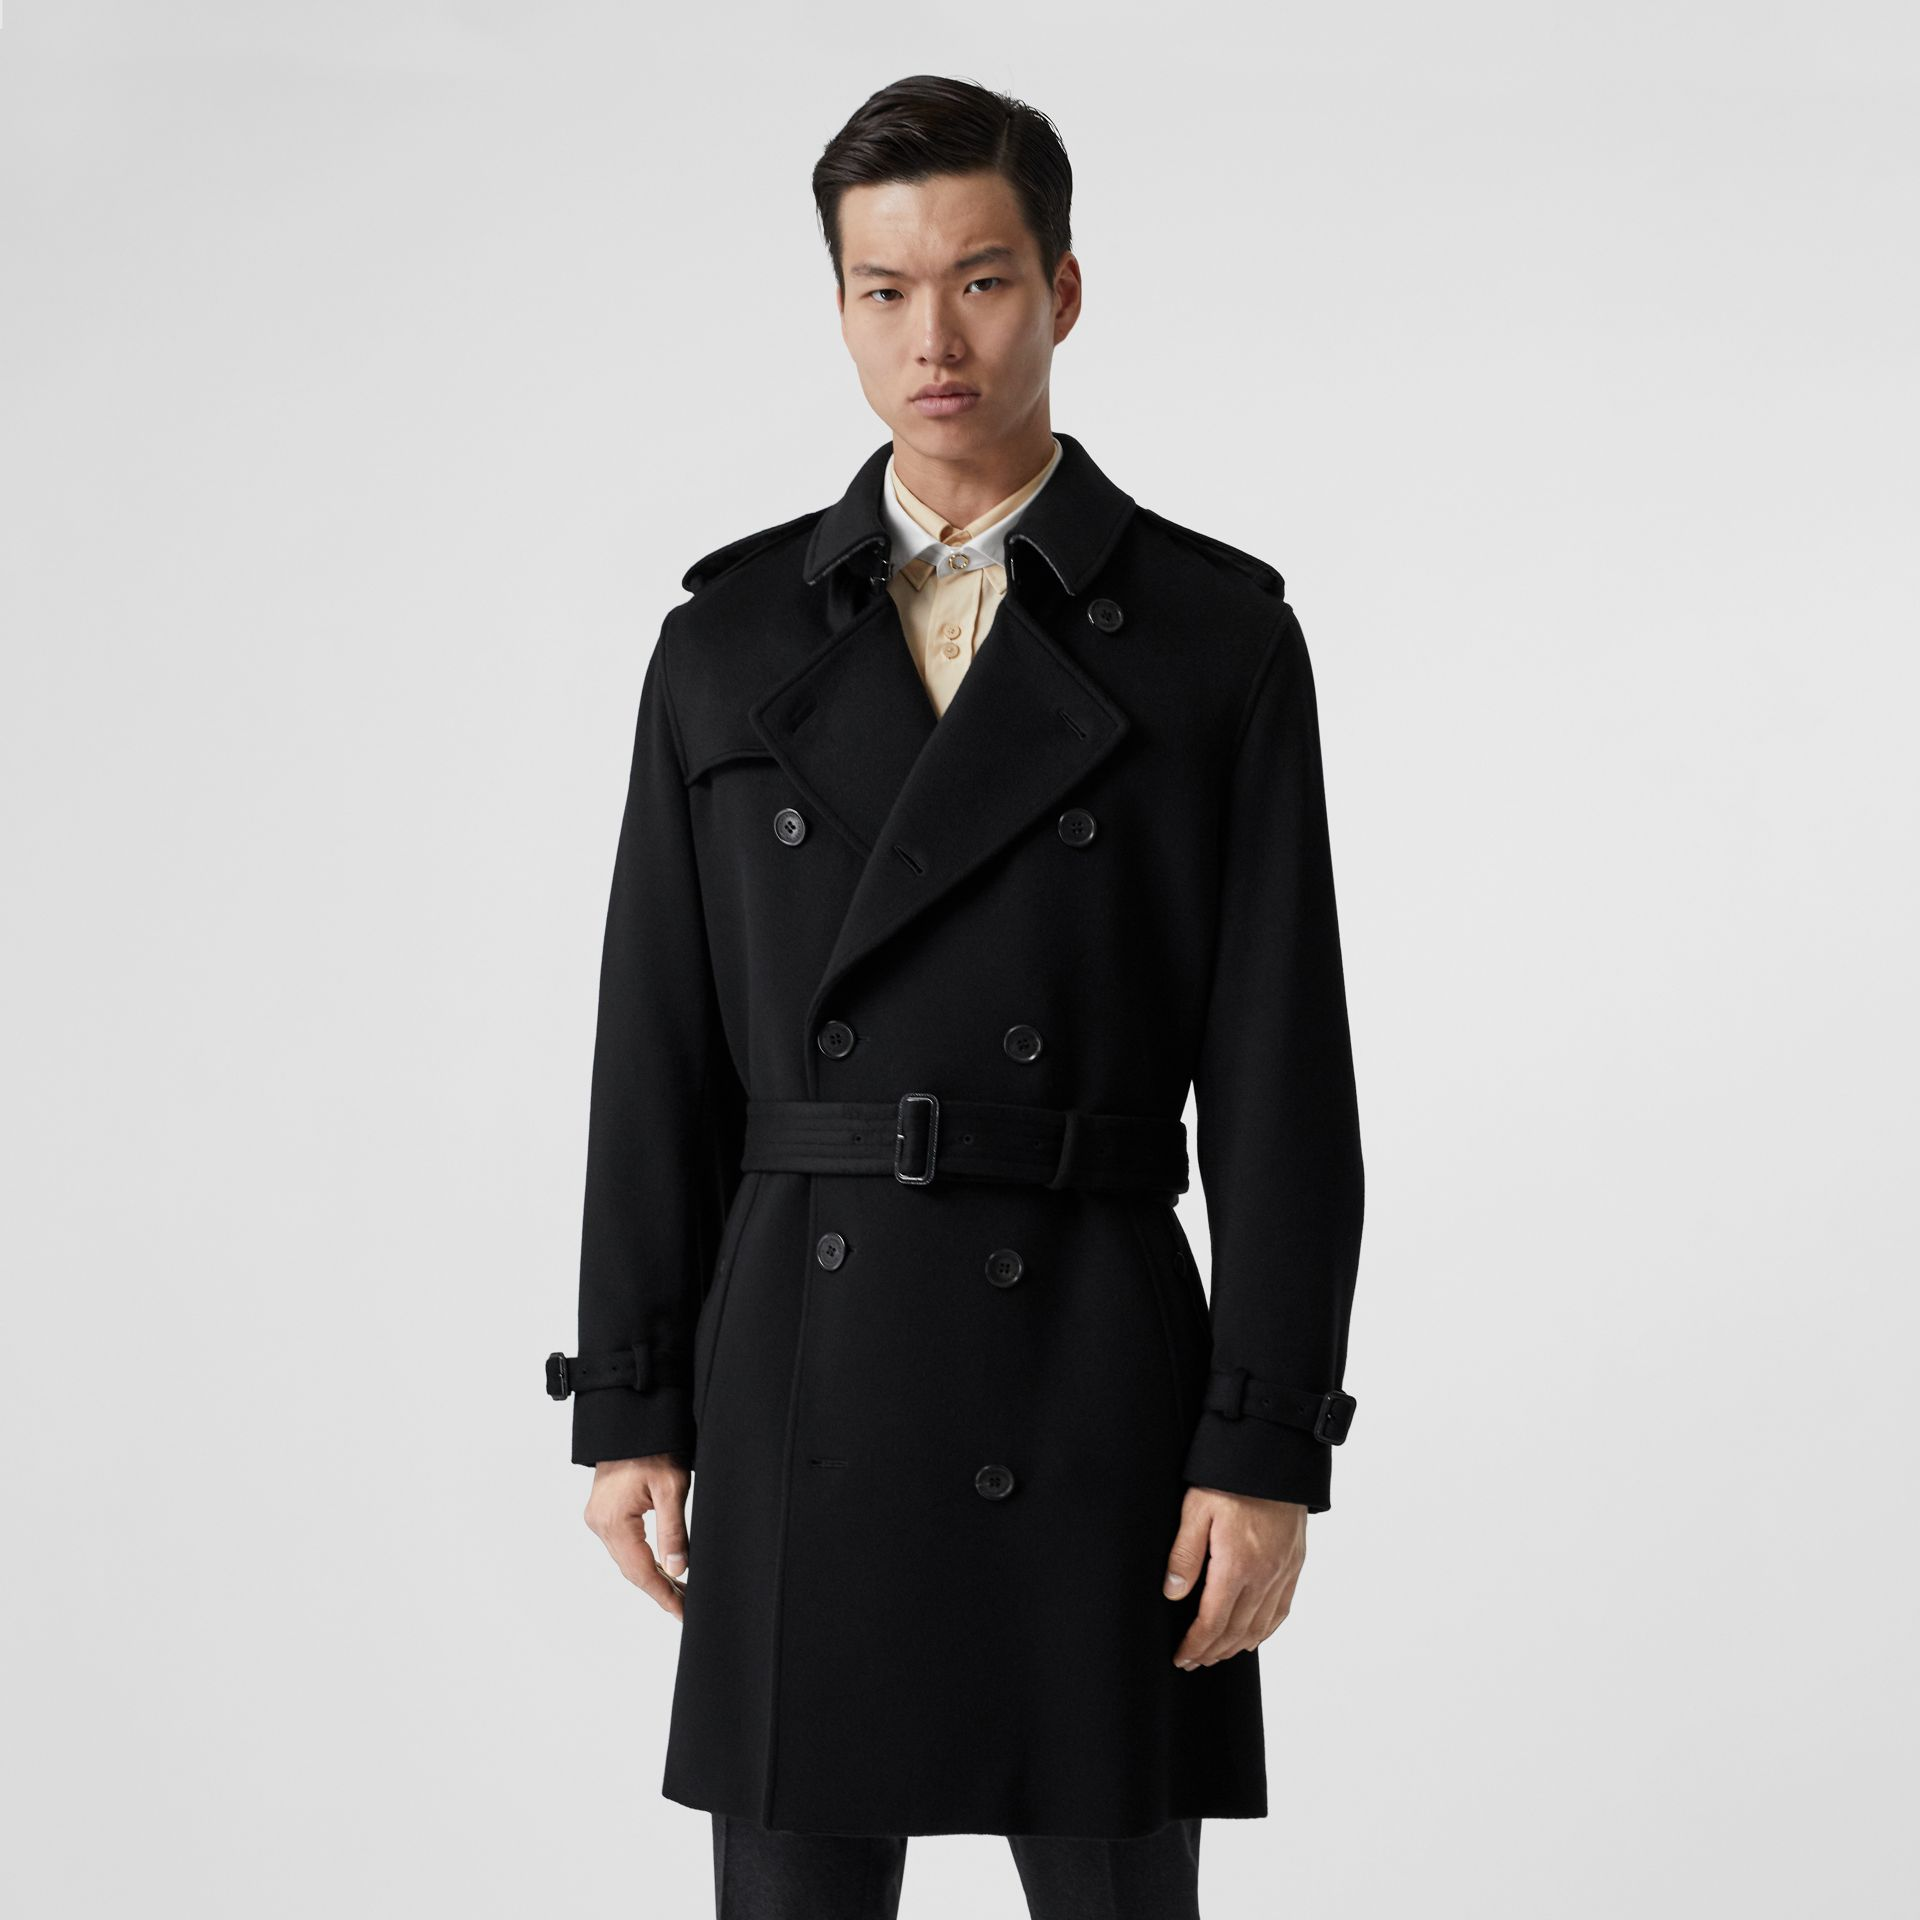 Cashmere Trench Coat in Black - Men | Burberry United States - gallery image 6